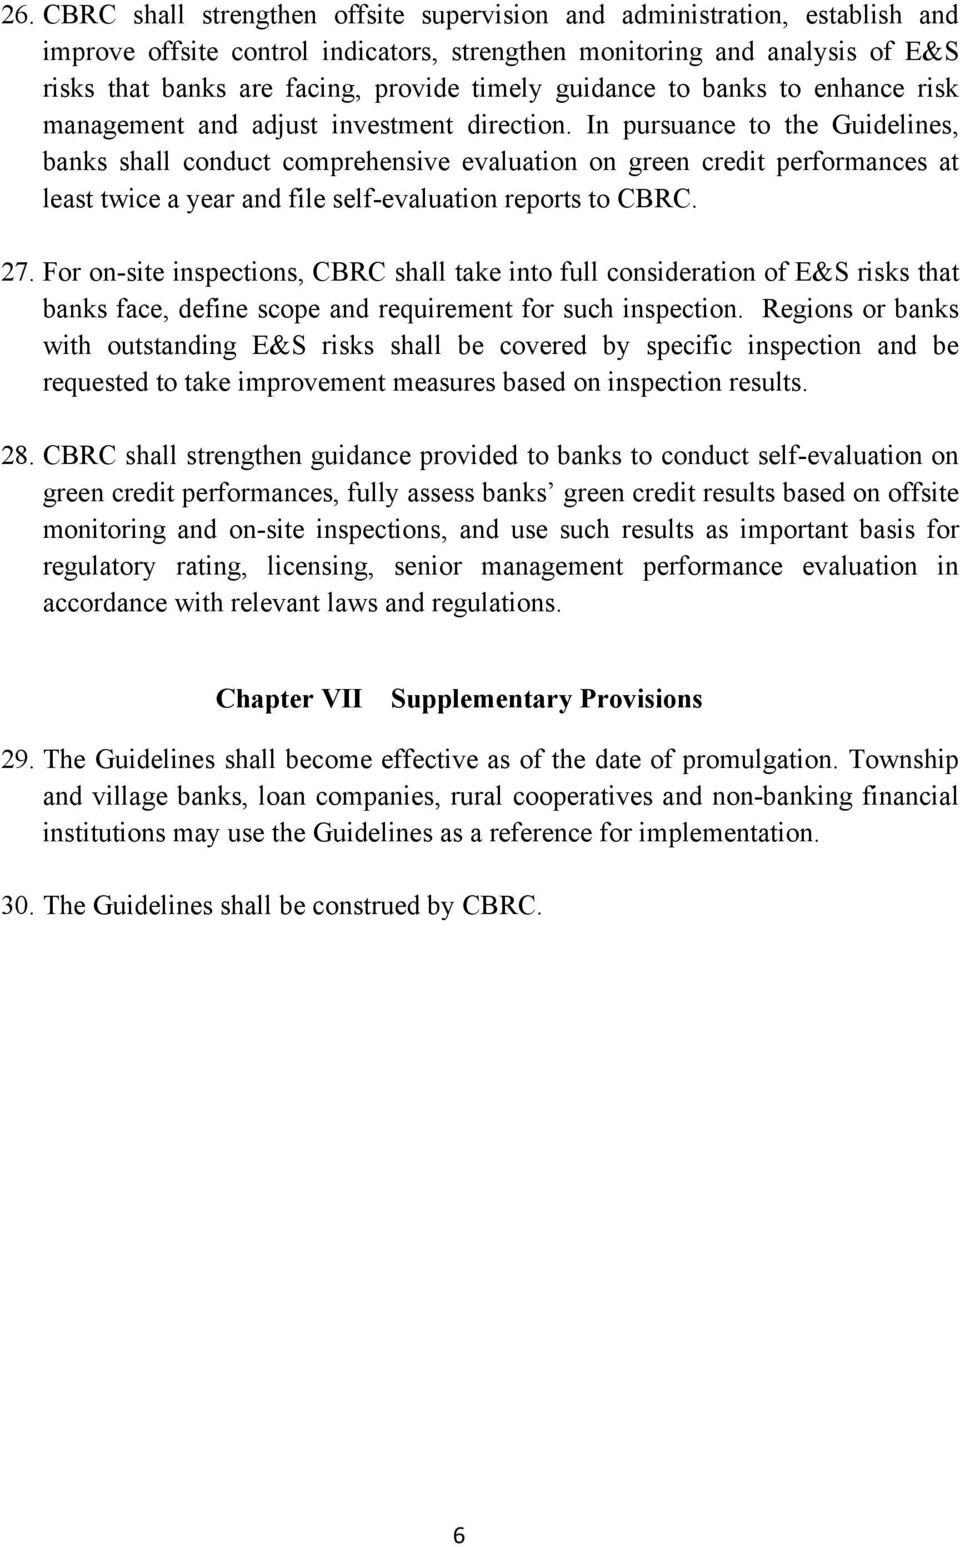 In pursuance to the Guidelines, banks shall conduct comprehensive evaluation on green credit performances at least twice a year and file self-evaluation reports to CBRC. 27.